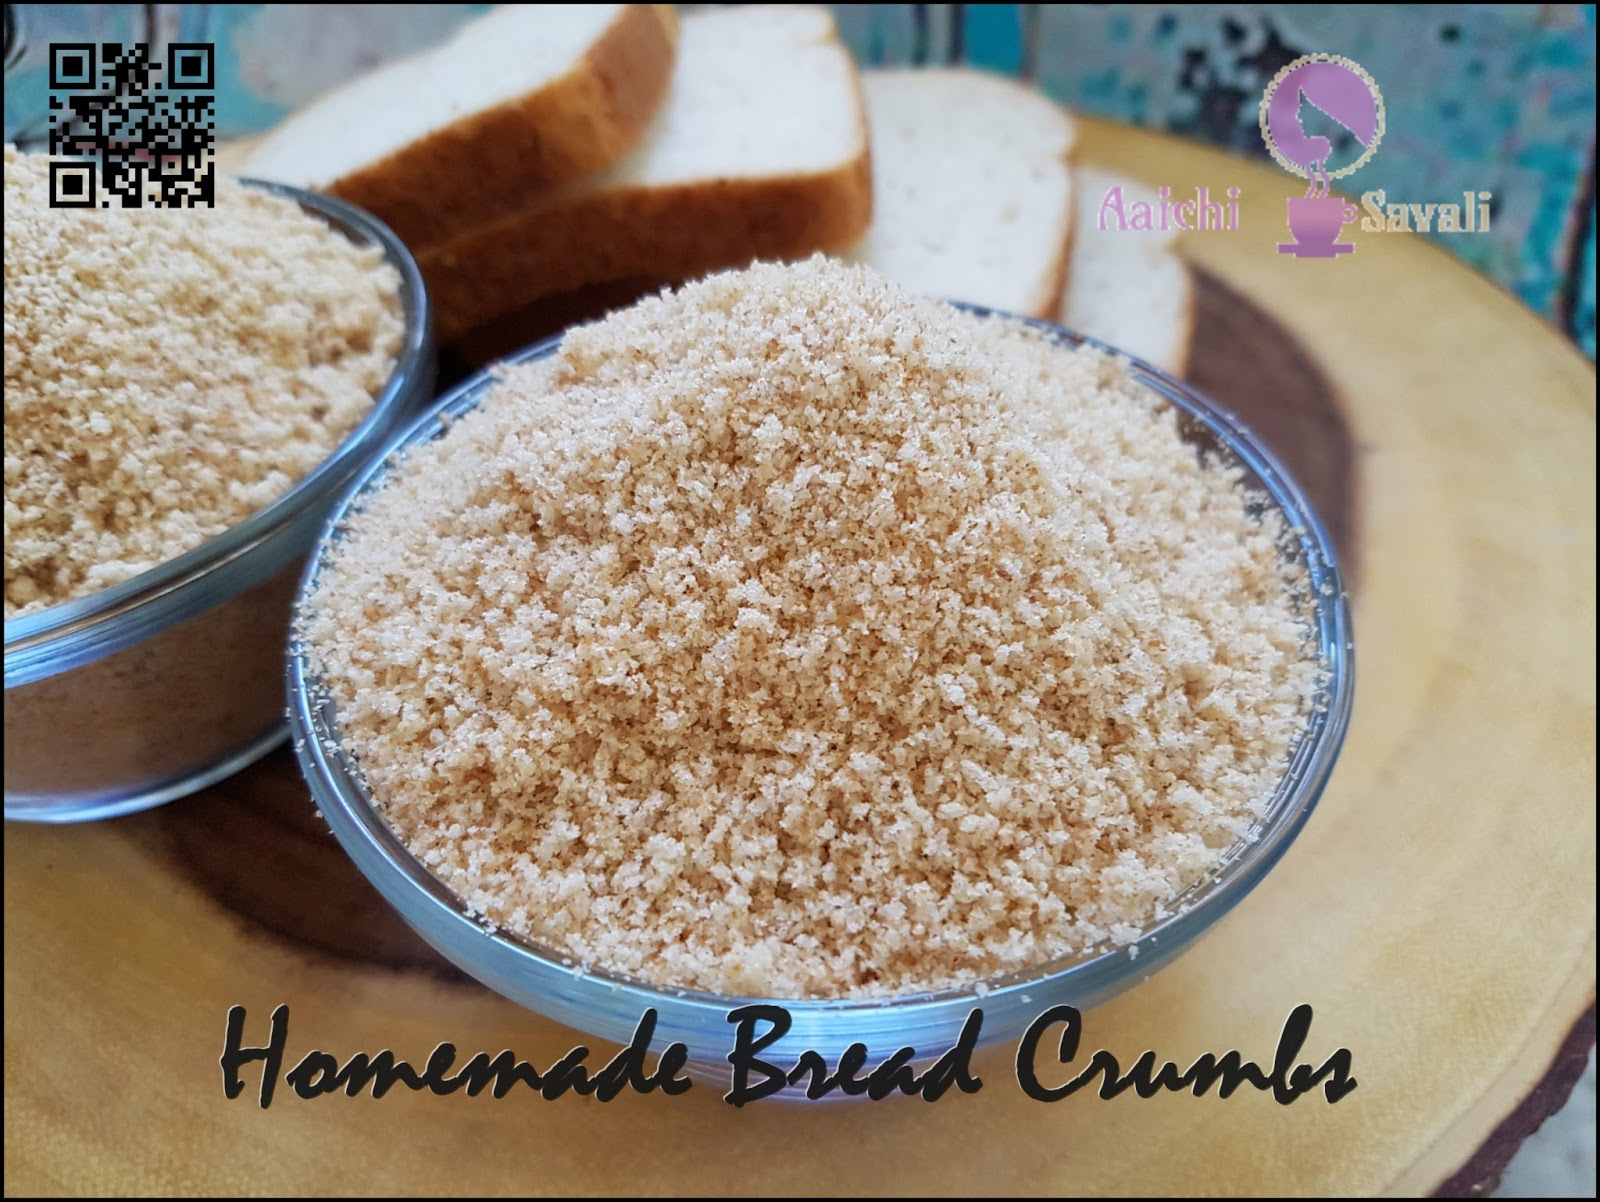 Diy series homemade bread crumbs aaichi savali how to make perfect bread crumbs without an oven and food processor homemadebreadcrumbs diybreadcrumbs i always love to find simple quick and easy forumfinder Gallery